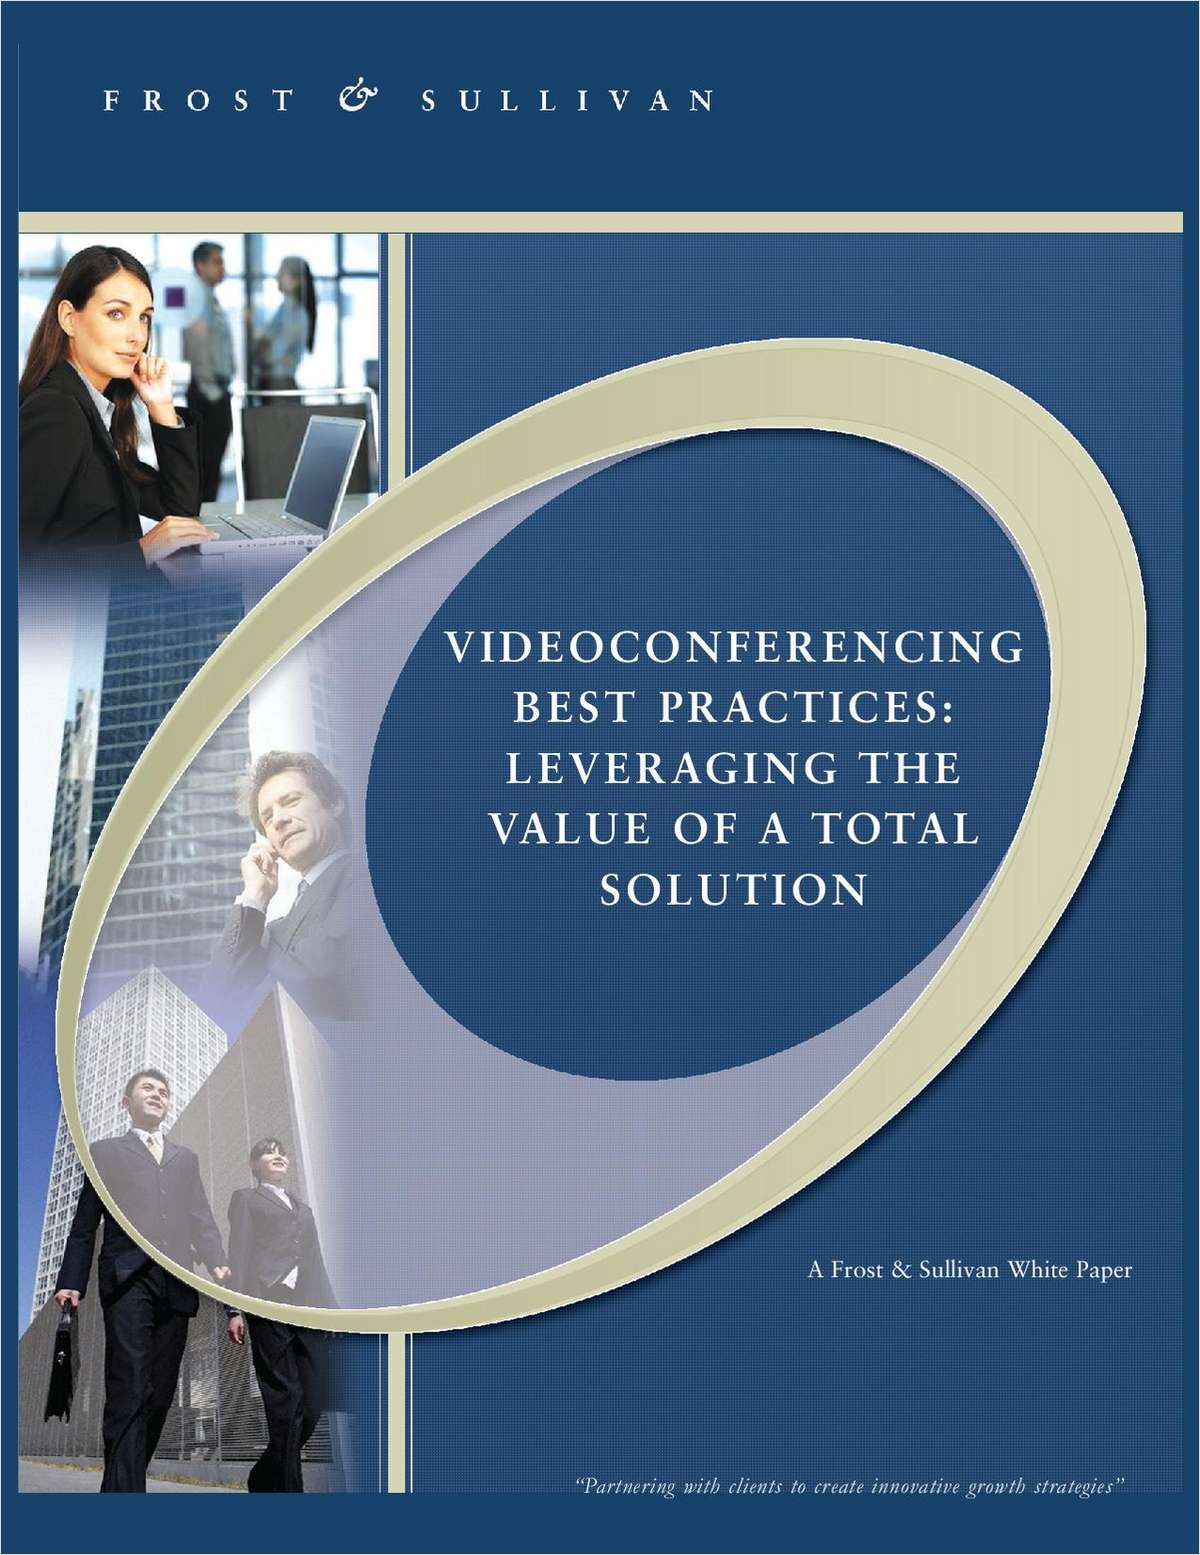 Video Conferencing Best Practices